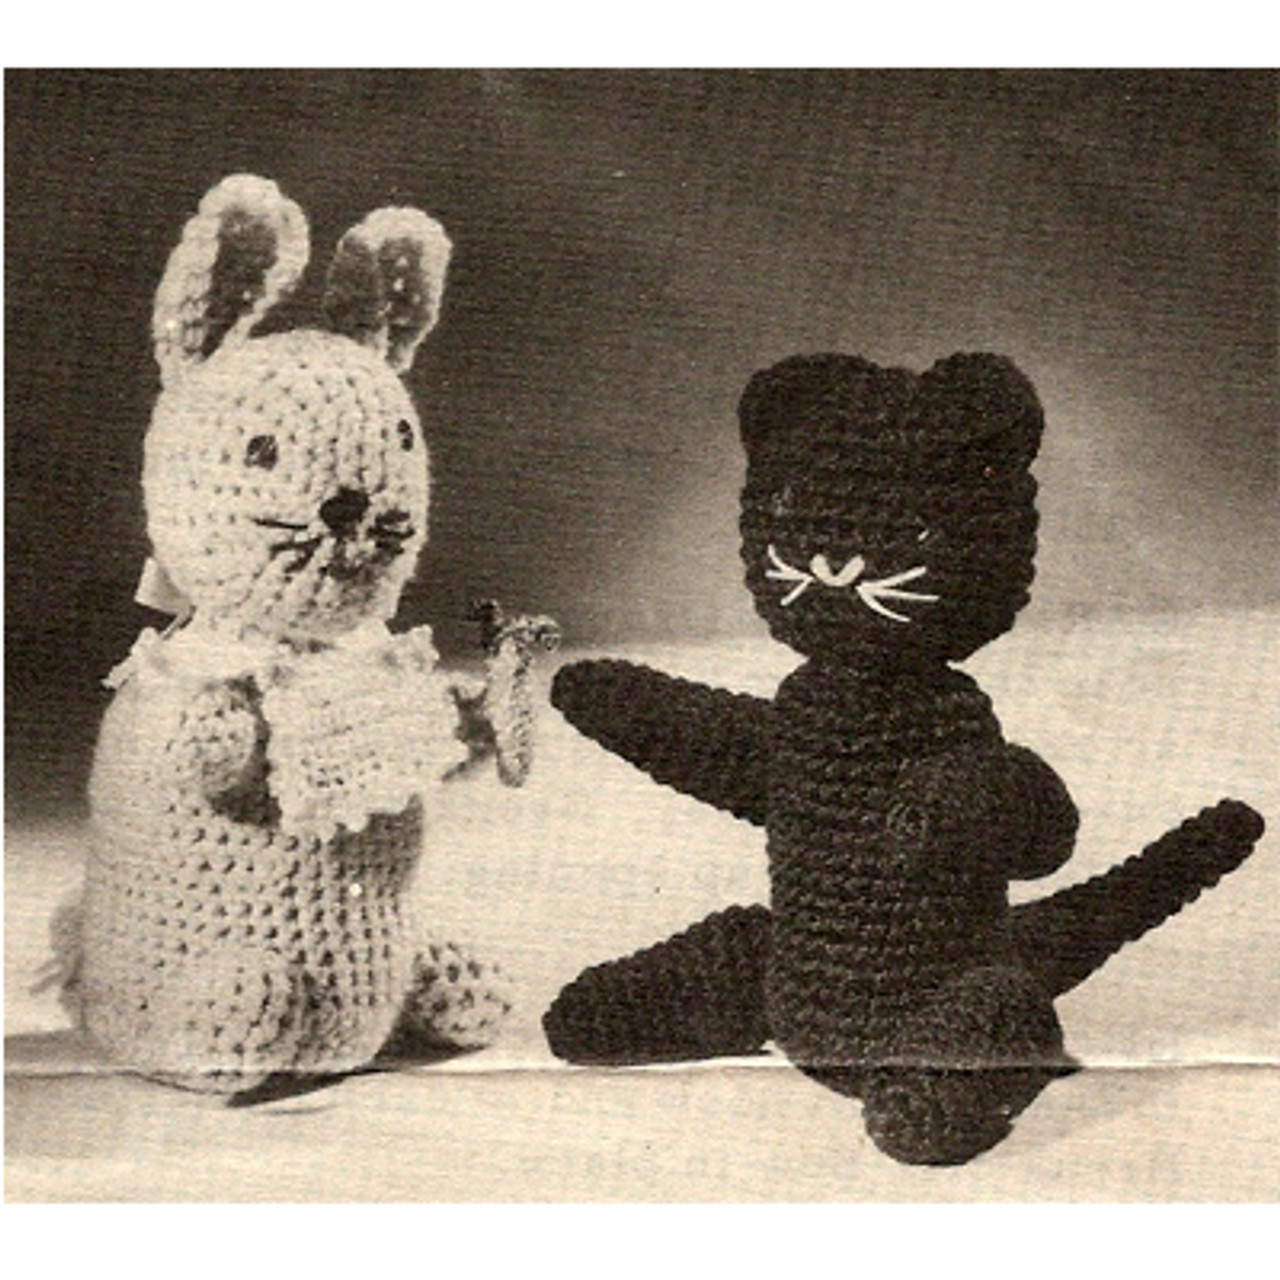 Crocheted Bunny and Black Cat Pattern